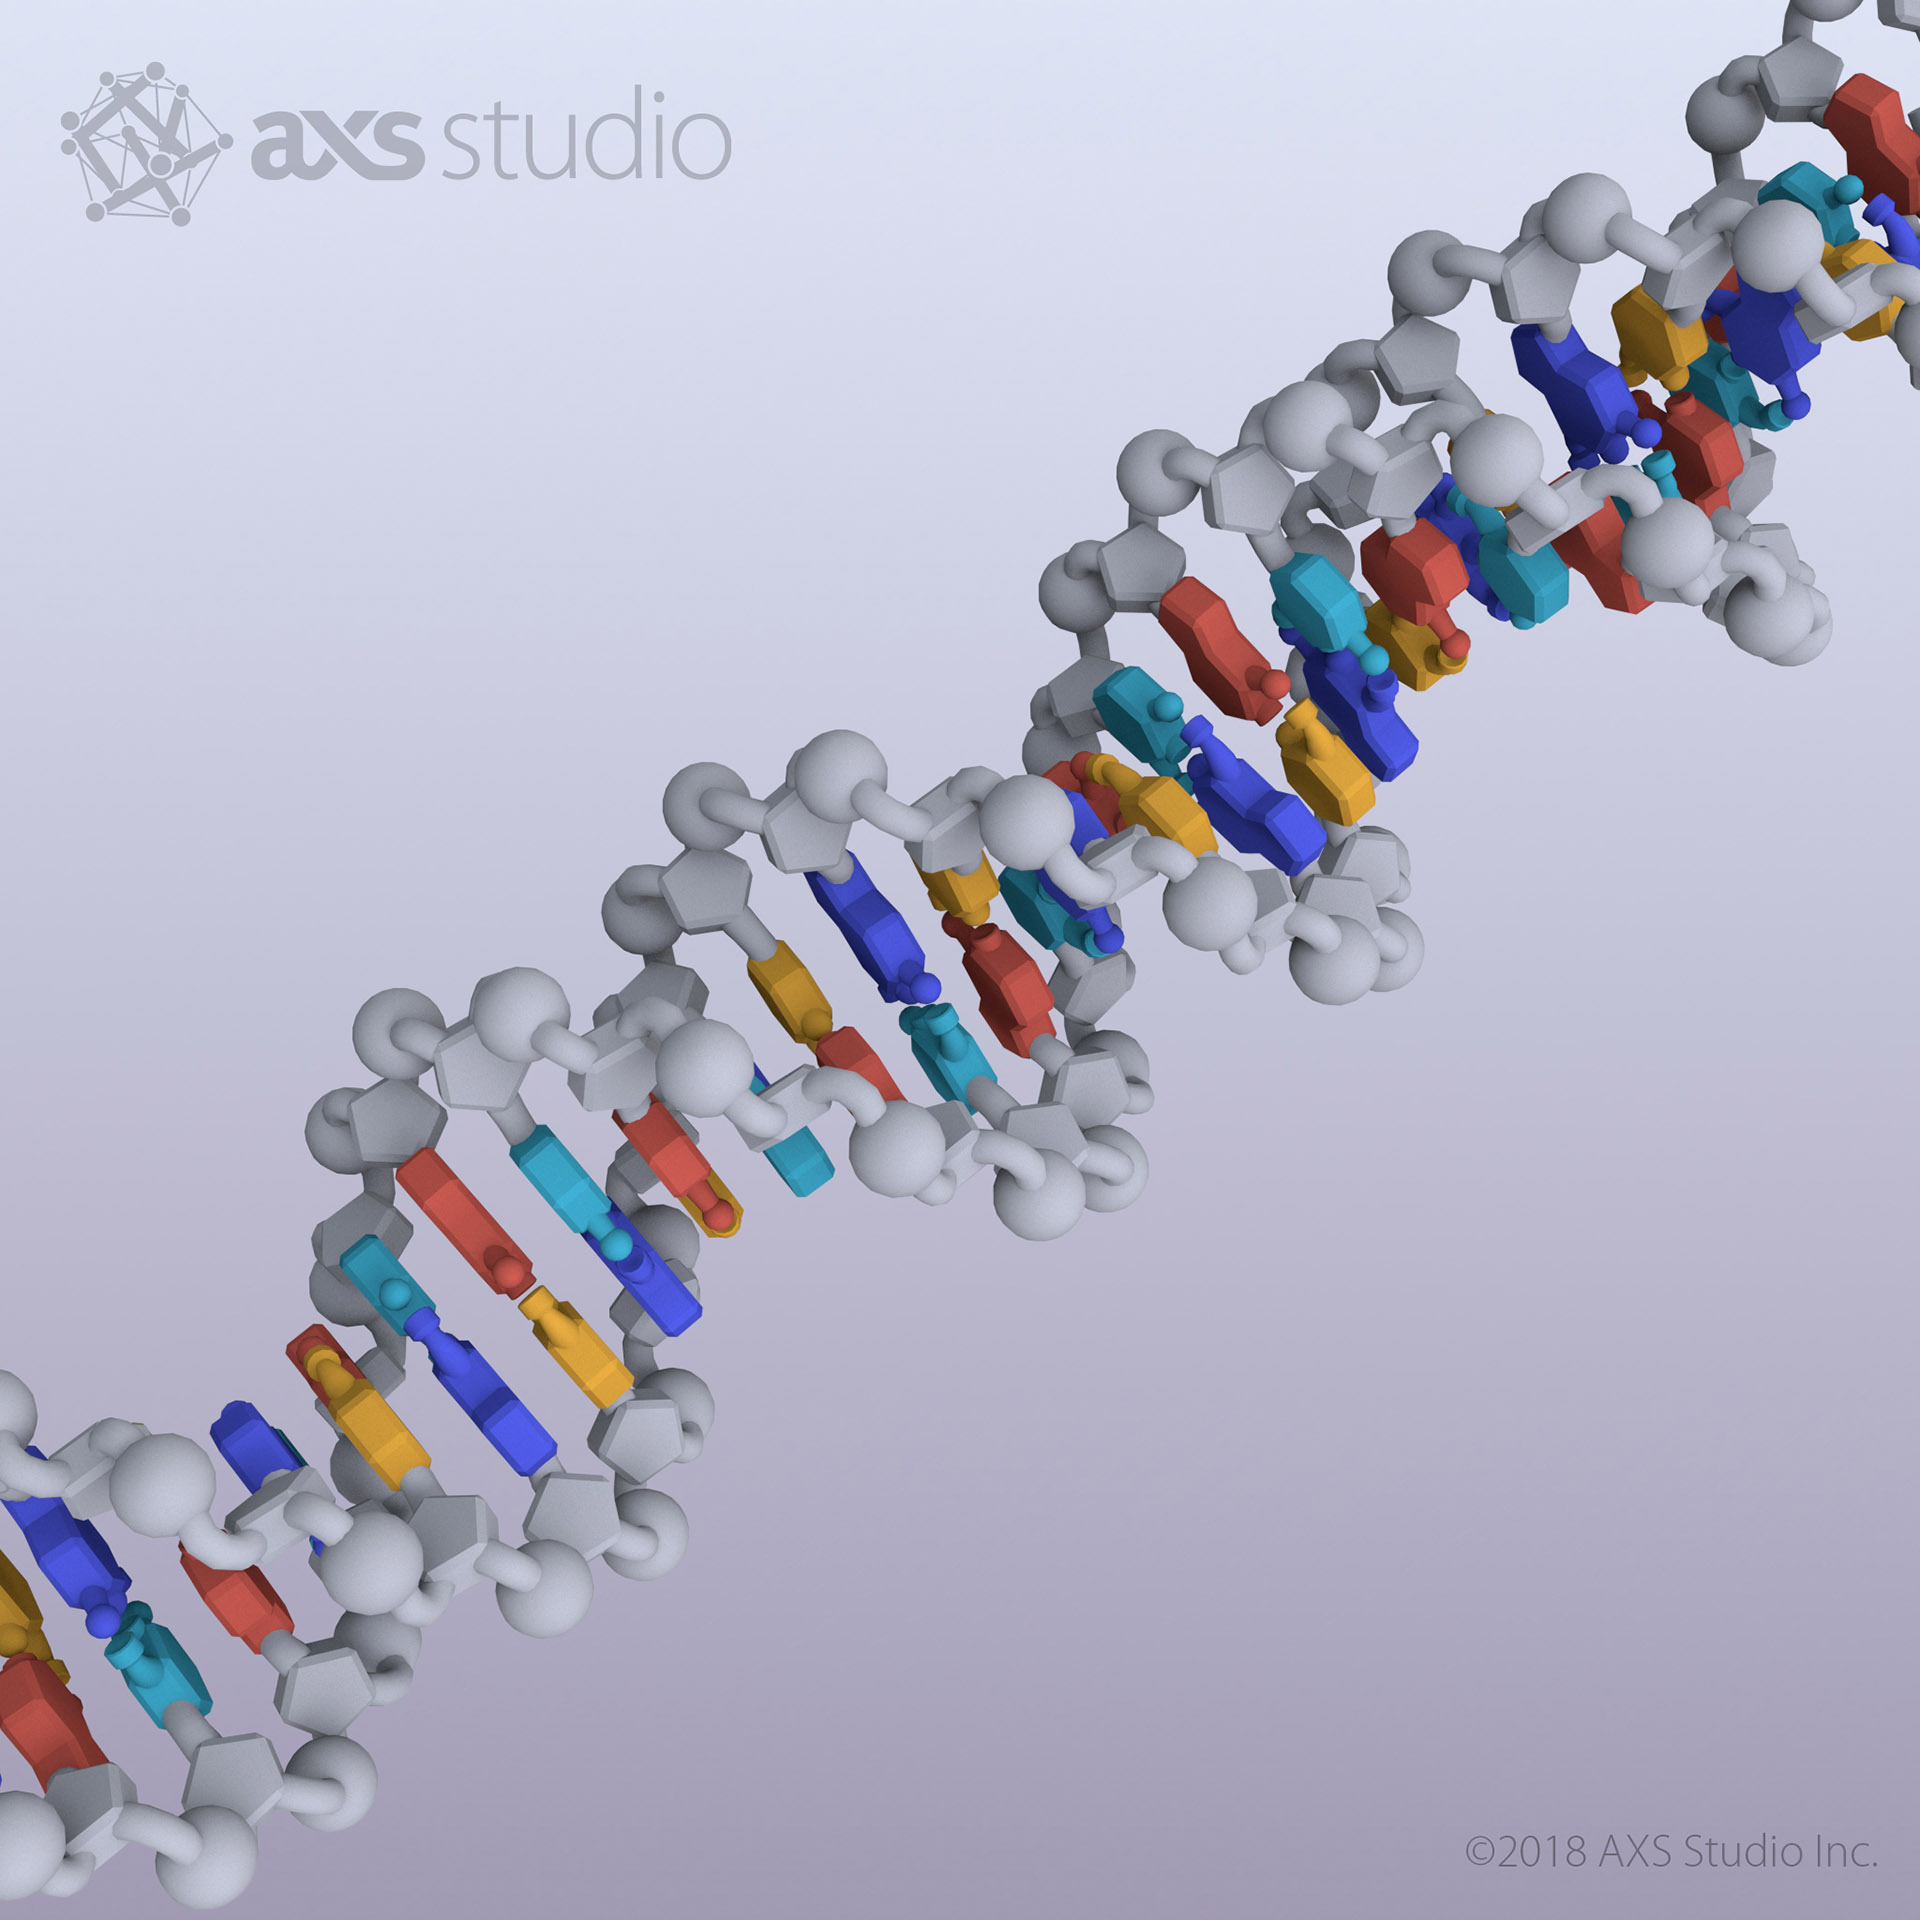 axs-studio-dna-virtual-reality-vr-double-helix-02